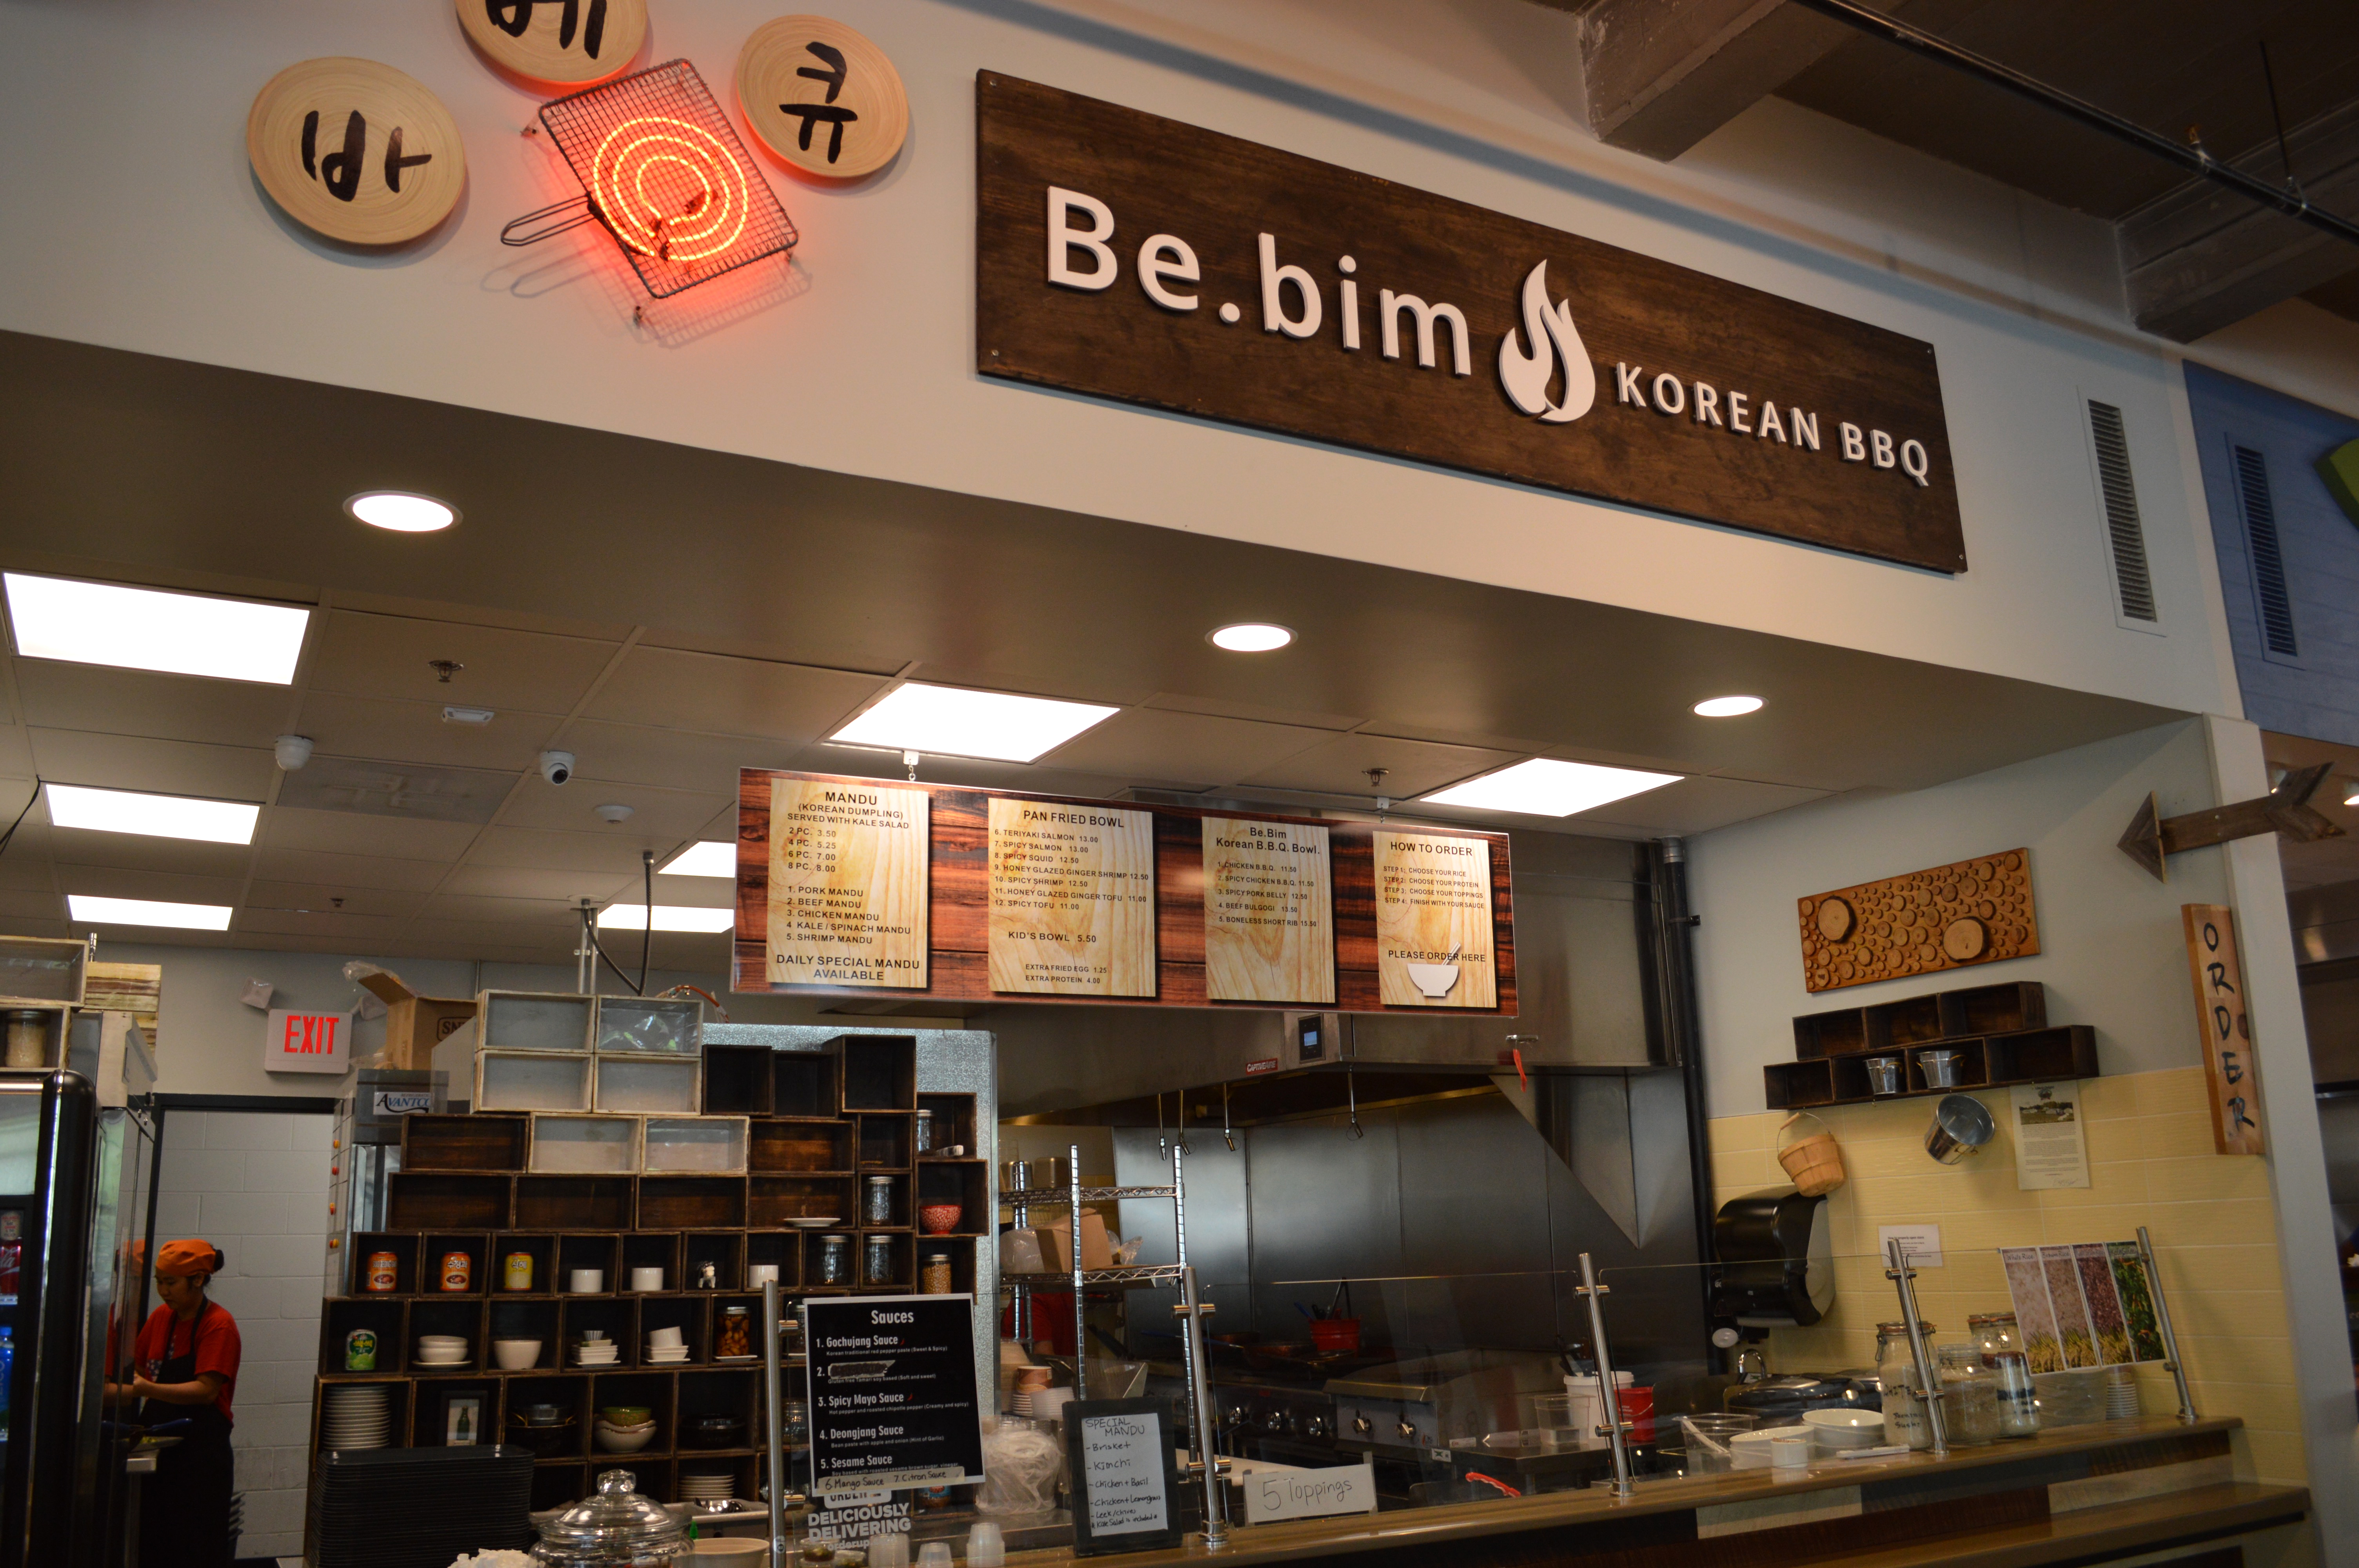 Be.bim, a Chipotle-style Korean barbecue stall that sells rice bowls and other small plates like dumplings.